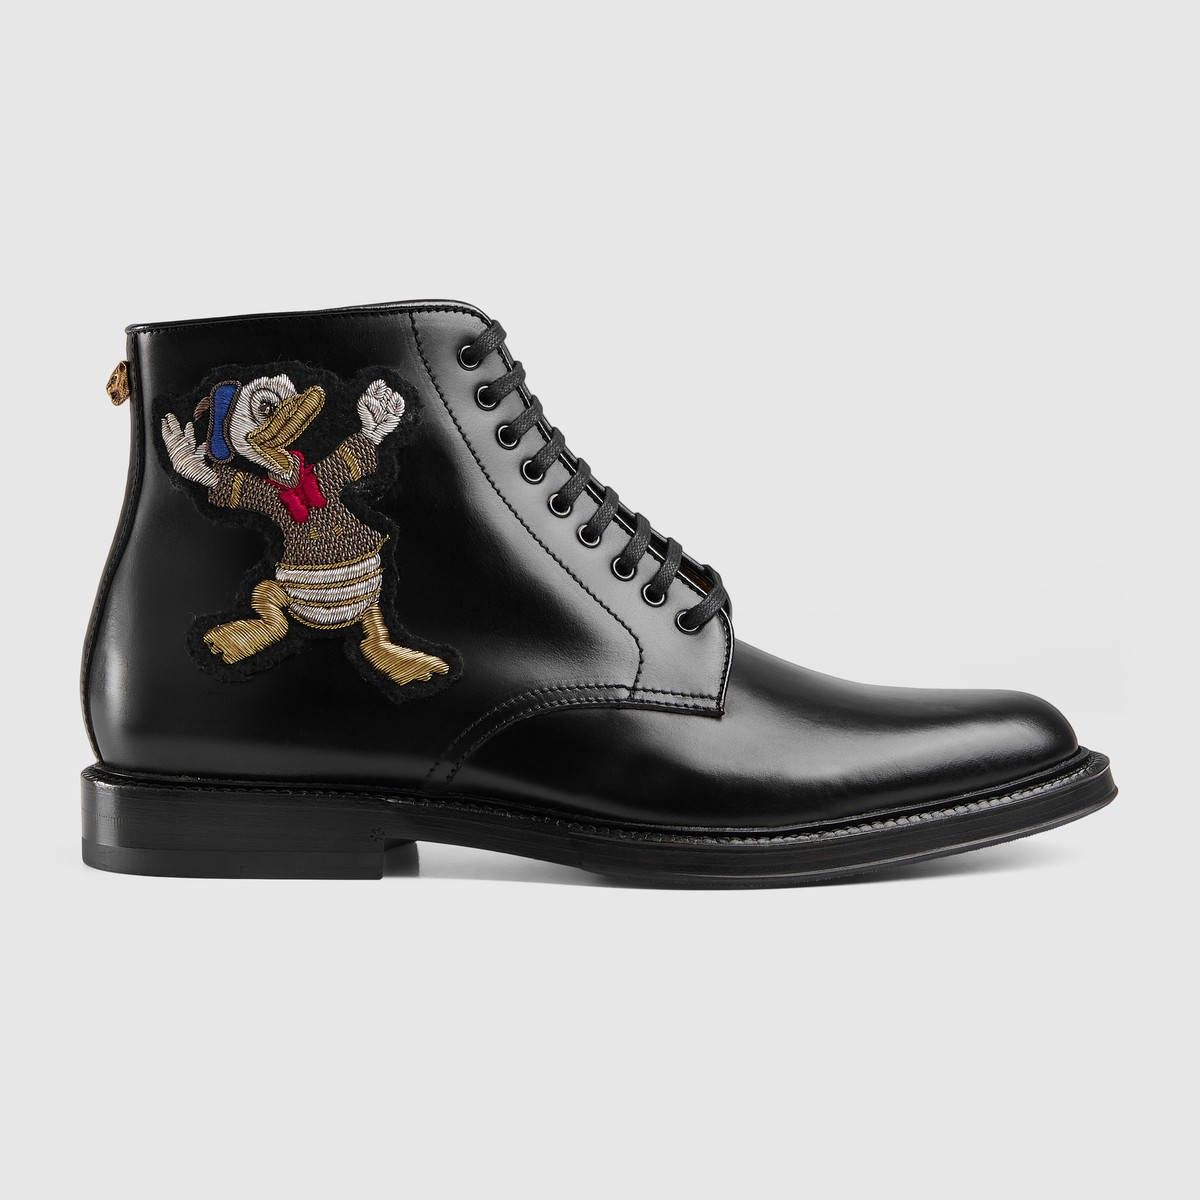 e766080656f GUCCI Leather Boot With Appliqués - Black Leather. #gucci #shoes ...